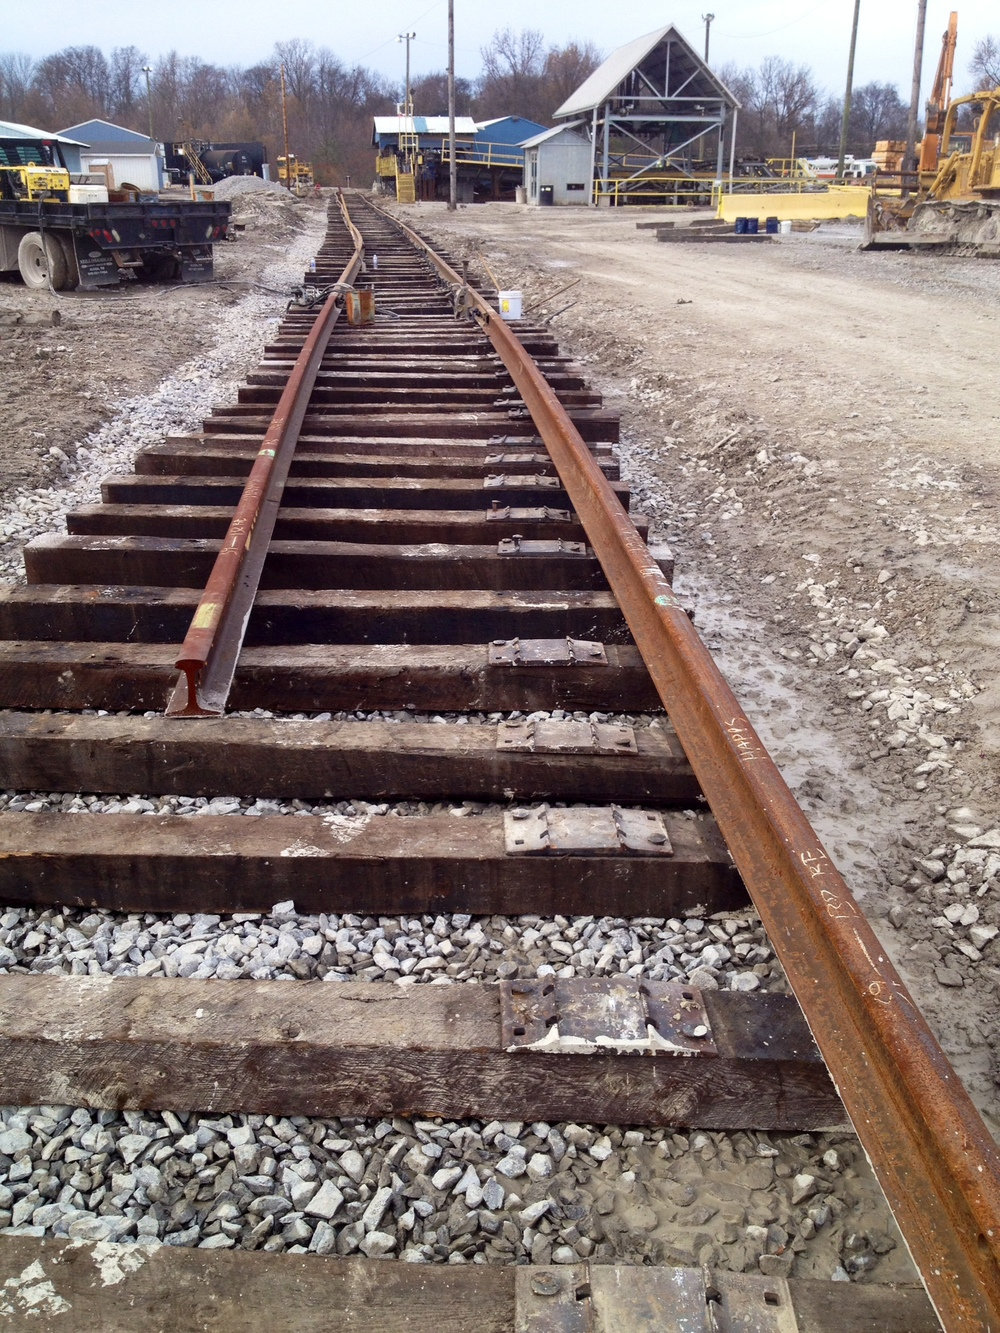 Railroad work - the source of materials at Rail Yard Studios